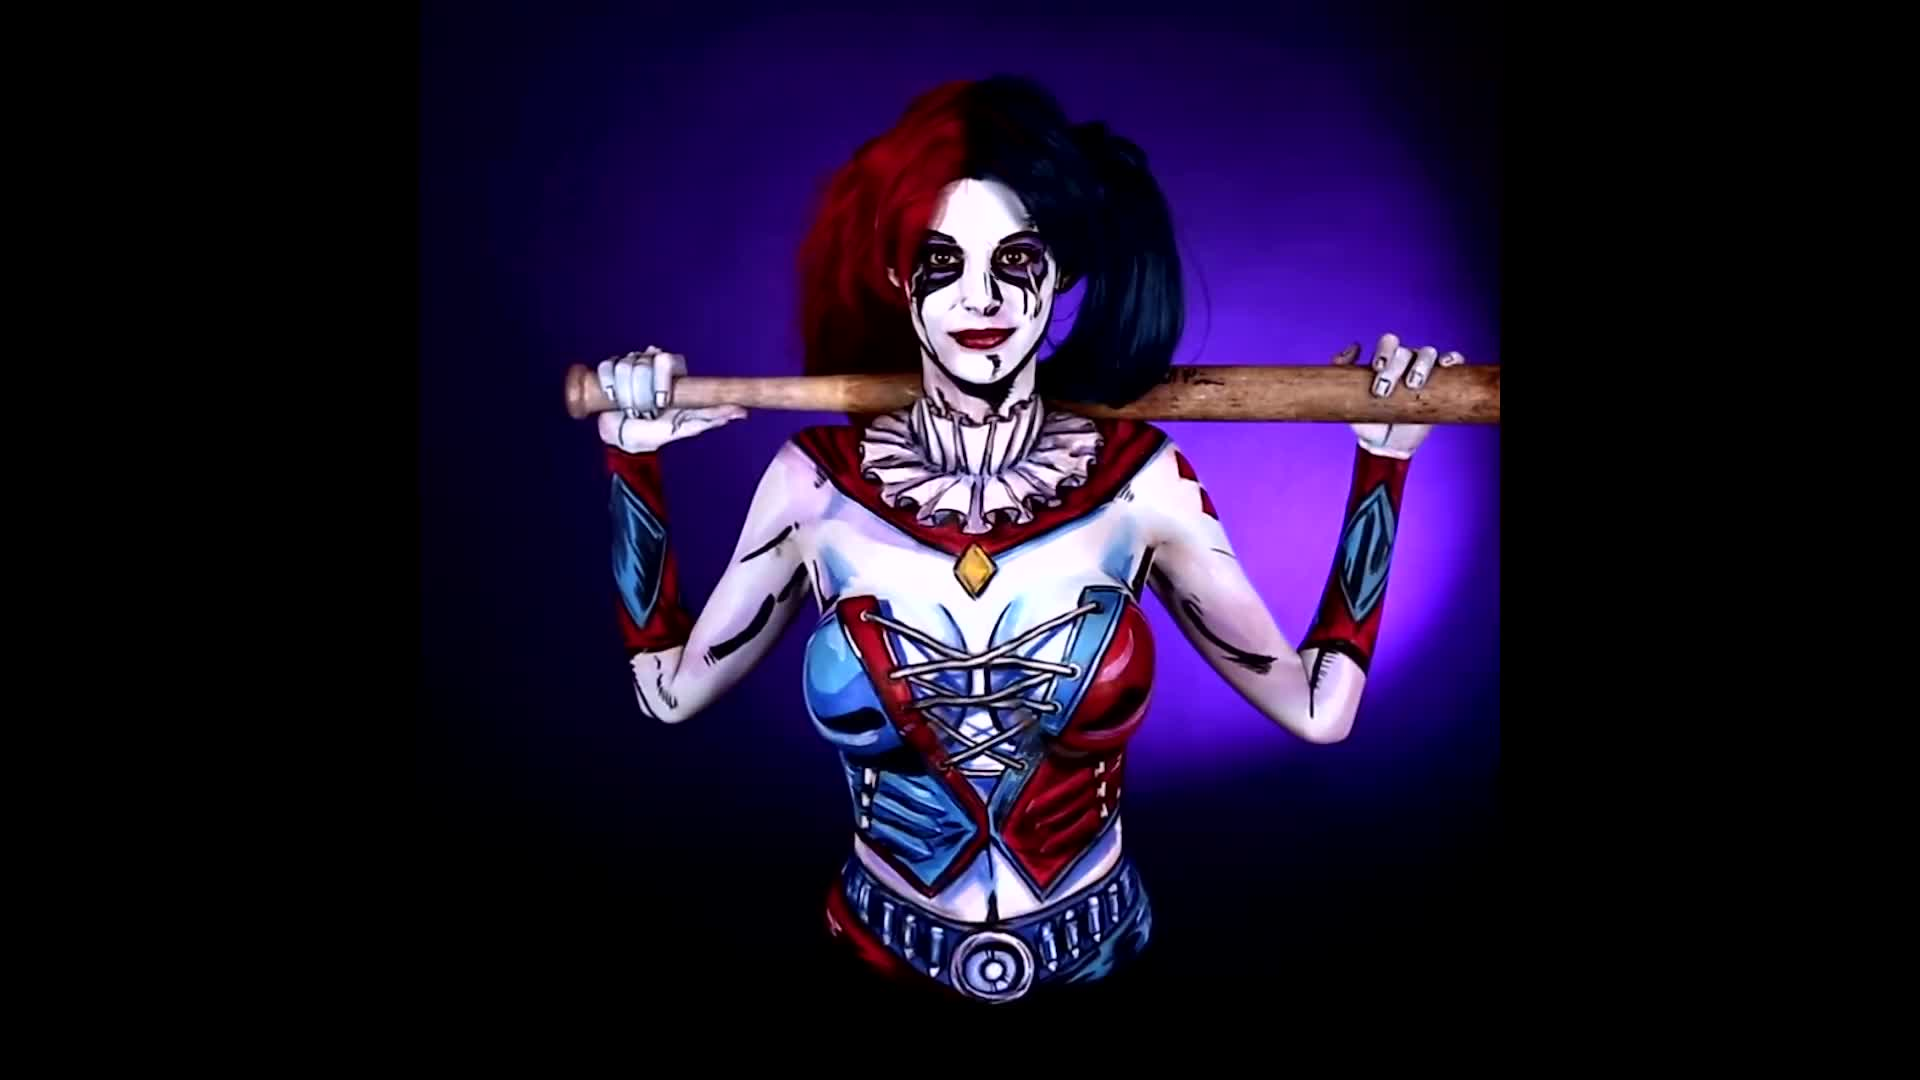 art, batman, body, body art, body paint, body- paint, body-art, bodyart, dark knight, dc, dcu, harley, harley quinn, joker, lapse, paint, quinn, suicide squad, suicidesquad, time, Harley Quinn Body Paint Tutorial Time Lapse GIFs